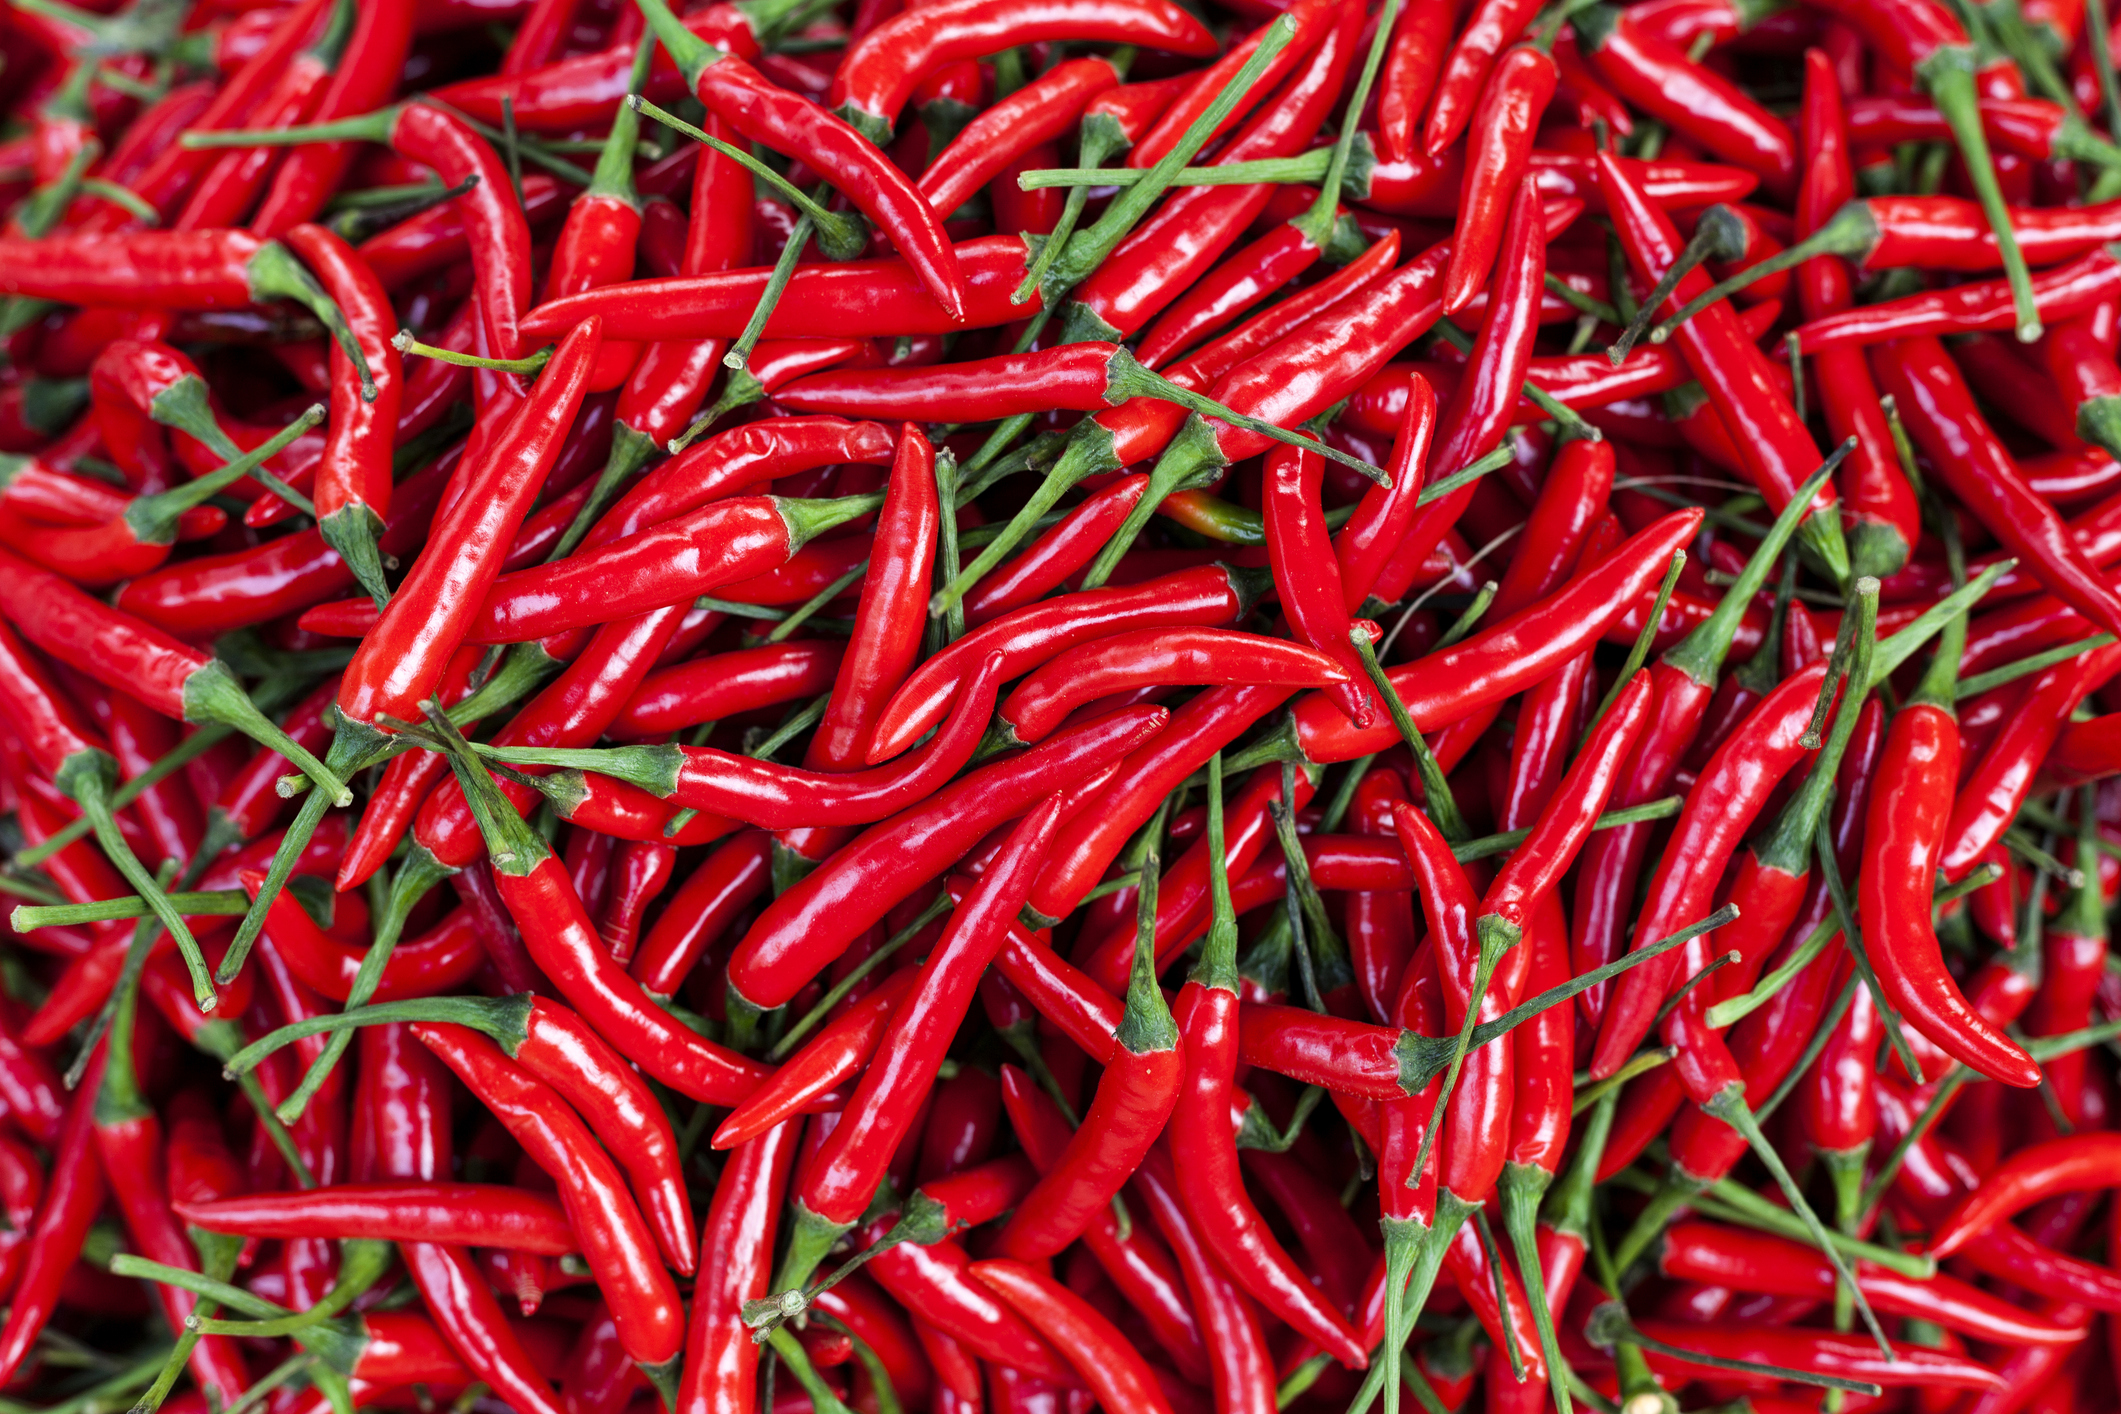 The chili pepper is the fruit of plants from the genus Capsicum, members of the nightshade family, Solanaceae. The substances that give chili peppers their intensity when ingested or applied topically are capsaicin (8 - methyl - N - vanillyl - 6 - nonenamide) and several related chemicals, collectively called capsaicinoids.